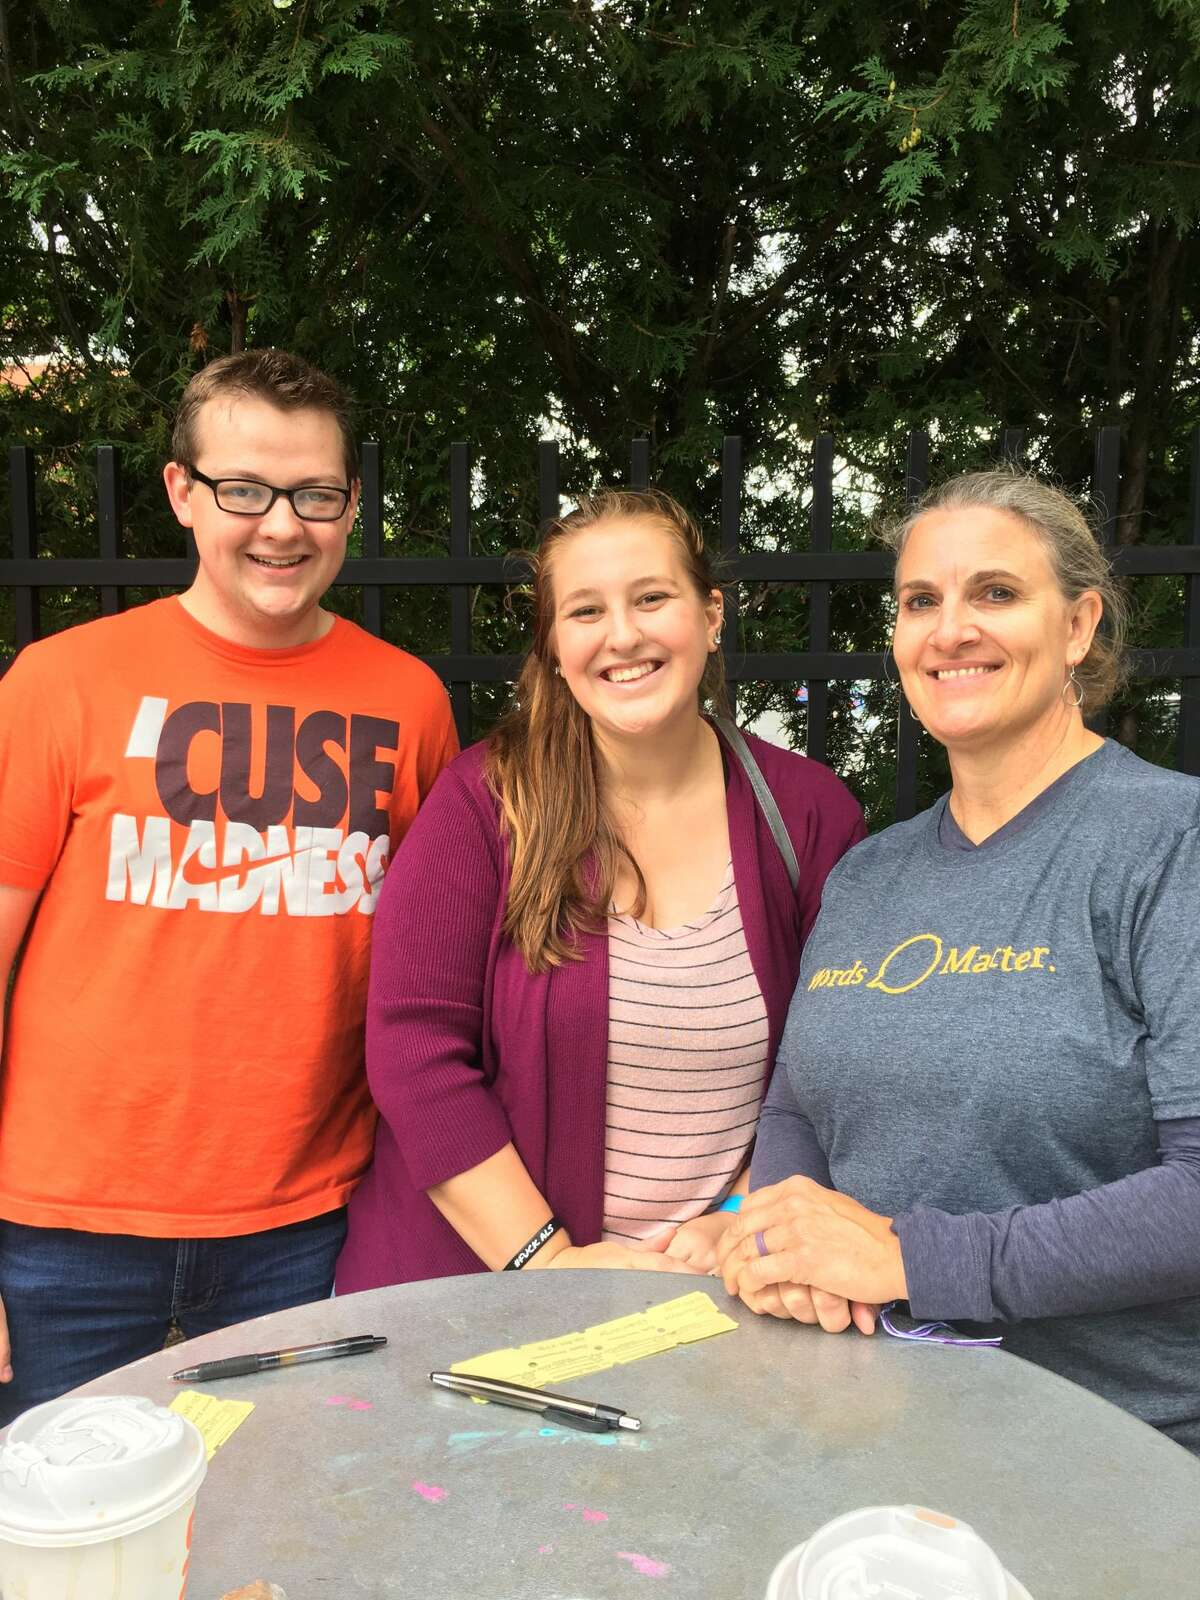 Were you Seen at the 10th Annual Moving Message Awareness and Fundraising Walk on Saturday, September 14, 2019 at The Campus Green at The College of Saint Rose? The event is hosted by the Communication Support Groups at The College of Saint Rose to raise community awareness for communication difficulties that arise from traumatic brain injury (TBI), stroke, and other neurological conditions.